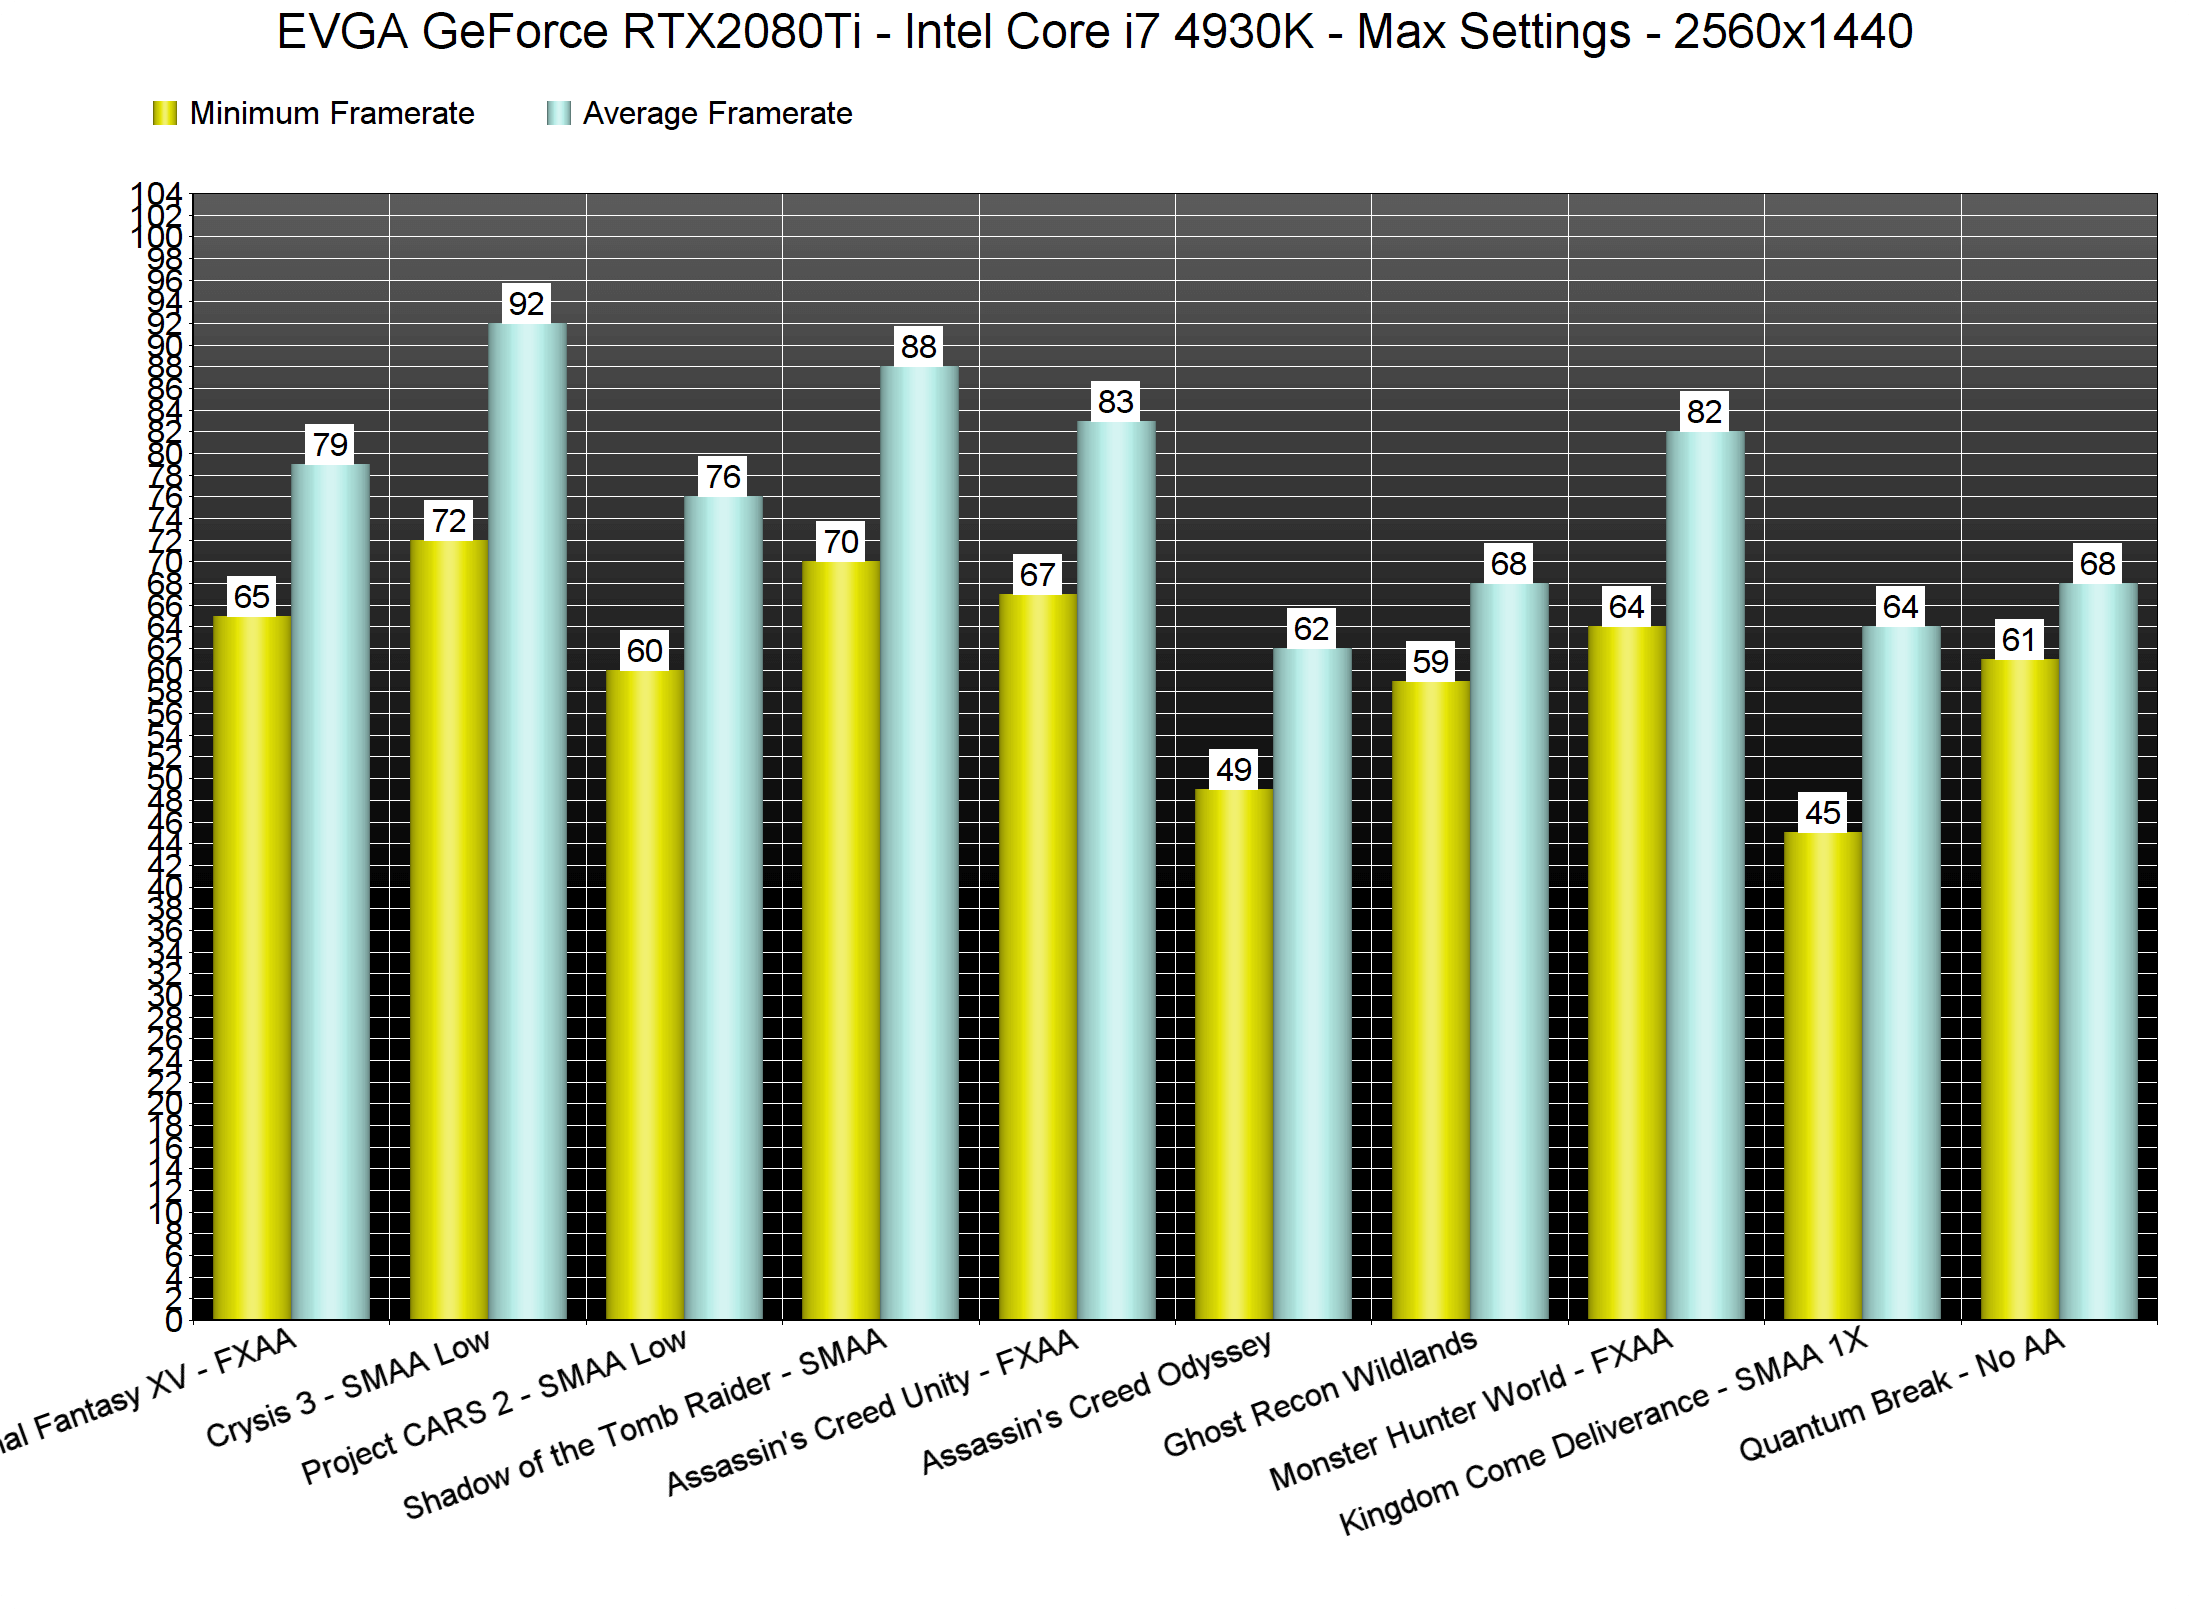 NVIDIA GeForce RTX 2080Ti benchmarked in the ten most